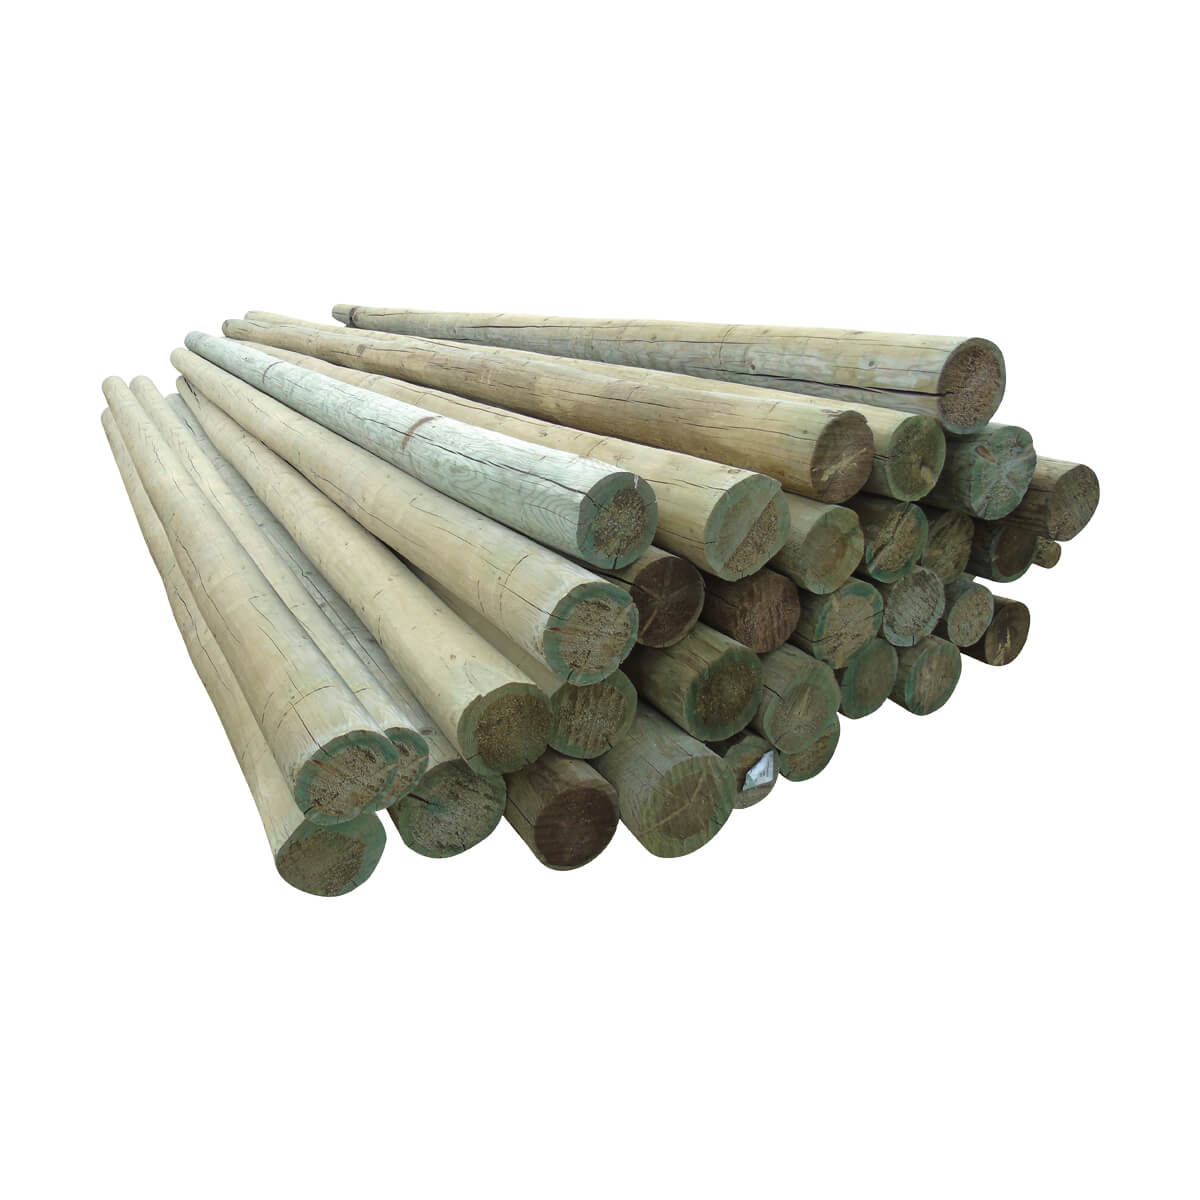 Peeled Fence Poles - Blunt - 6-in x 25-ft